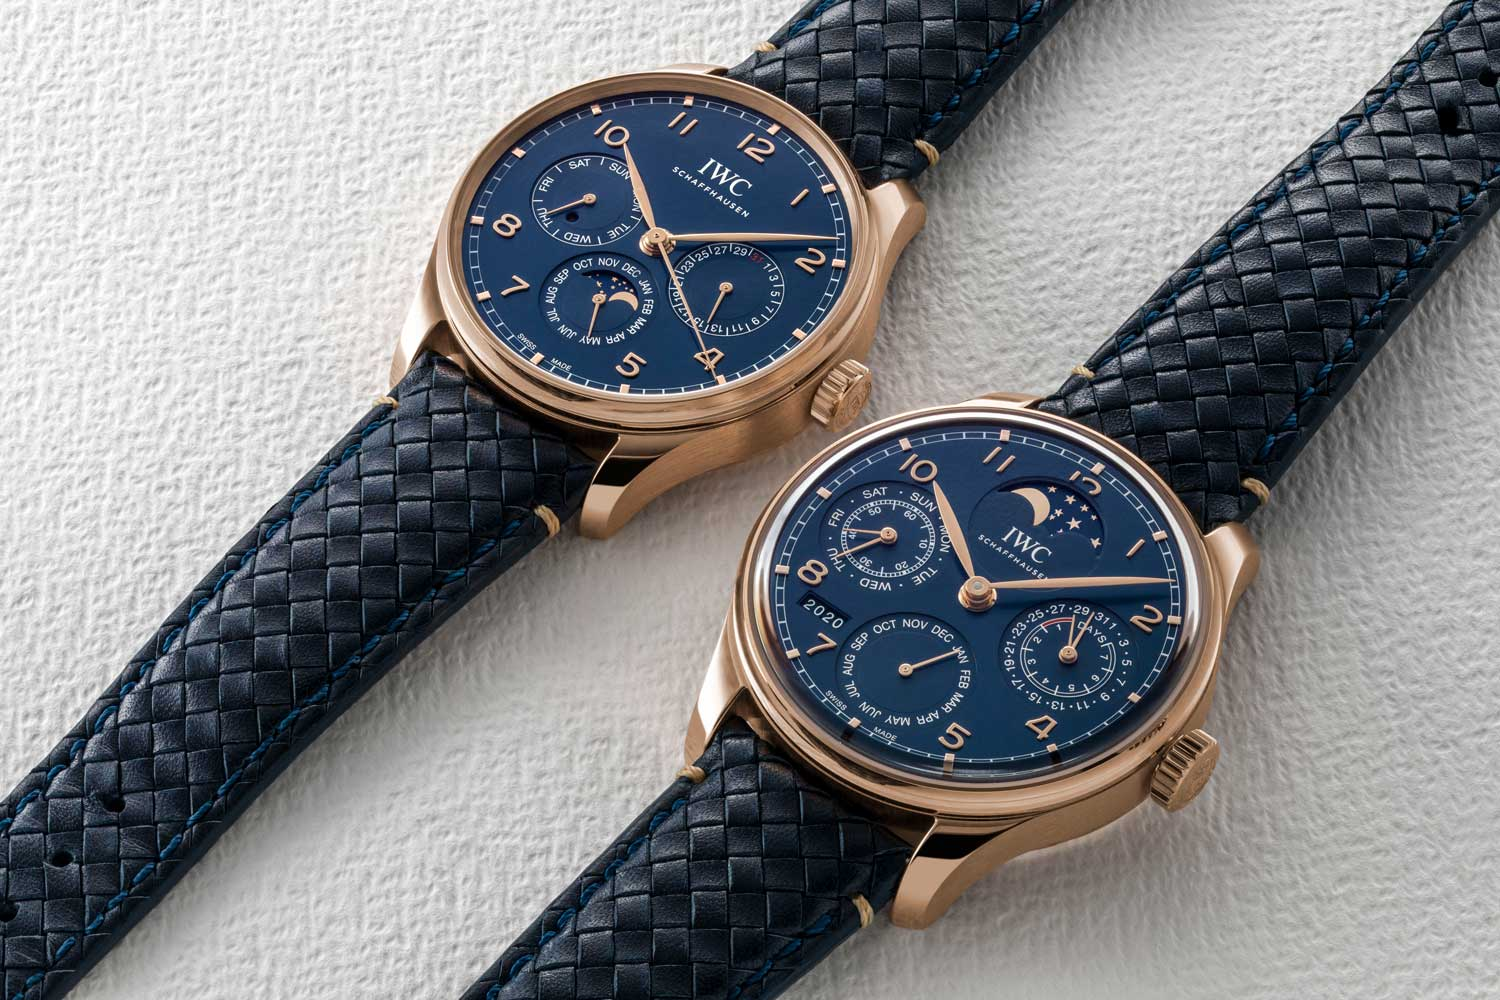 Boutique edition version of the Portugieser Perpetual Calendar 42 and Portugieser Perpetual Calendar (Image © Revolution)